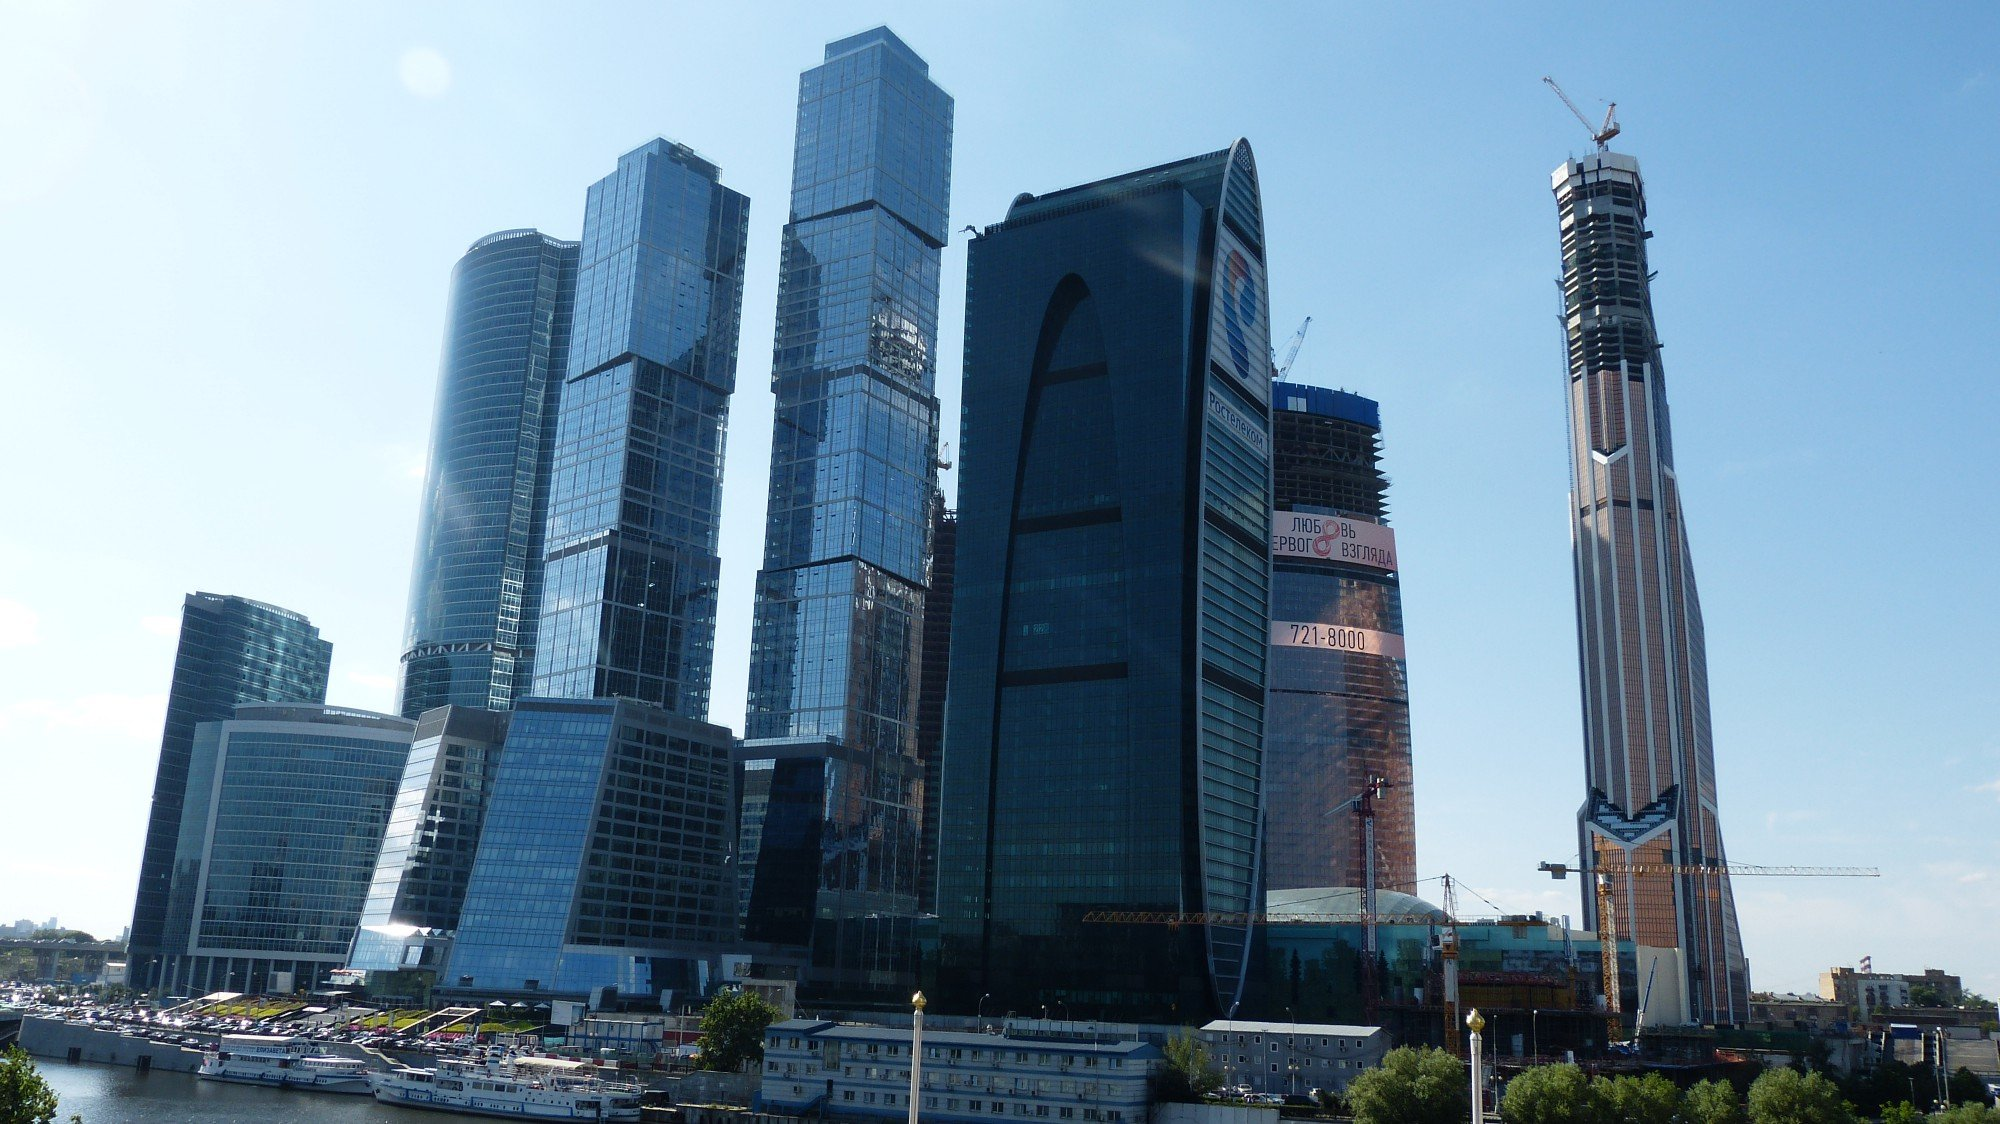 Moscow City. Photograph: Mariano Montel under a CC licence